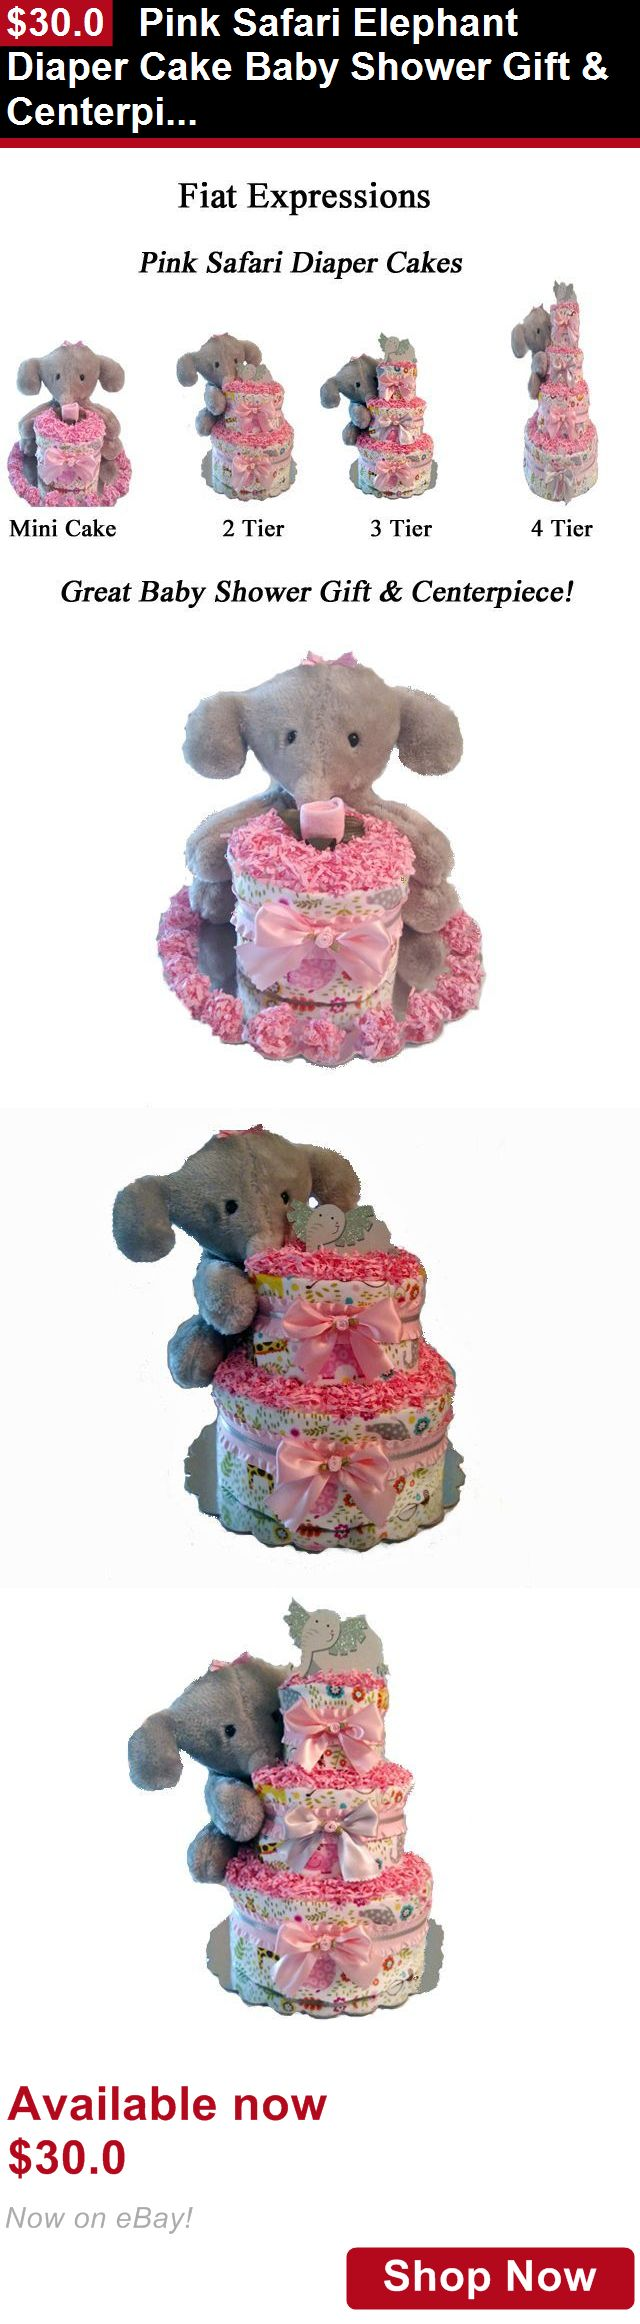 Baby Diaper Cakes: Pink Safari Elephant Diaper Cake Baby Shower Gift And Centerpiece BUY IT NOW ONLY: $30.0